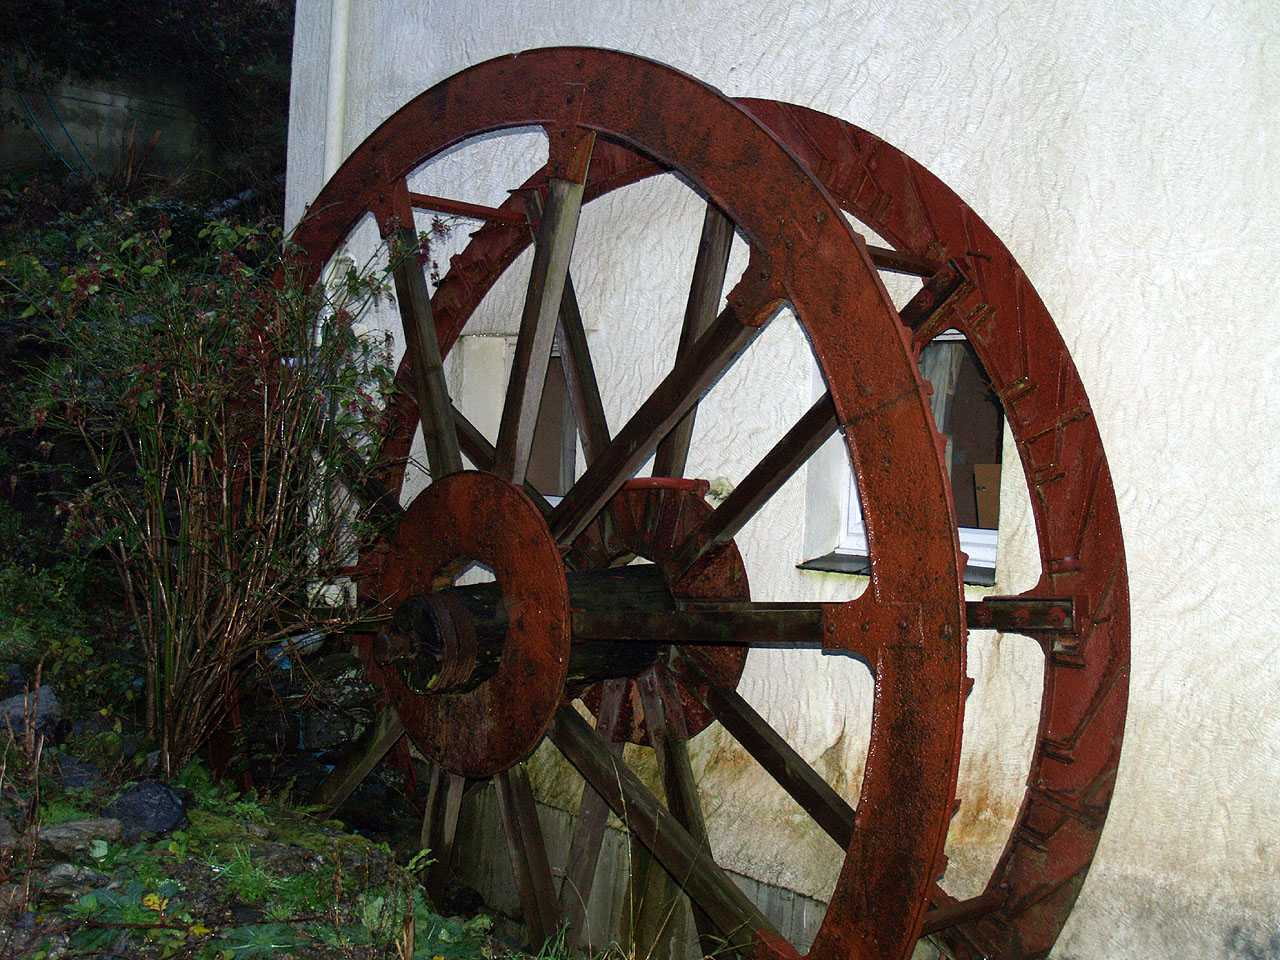 Anglesey, Bodffordd, Frogwy Water Mill - Water Wheel - close up